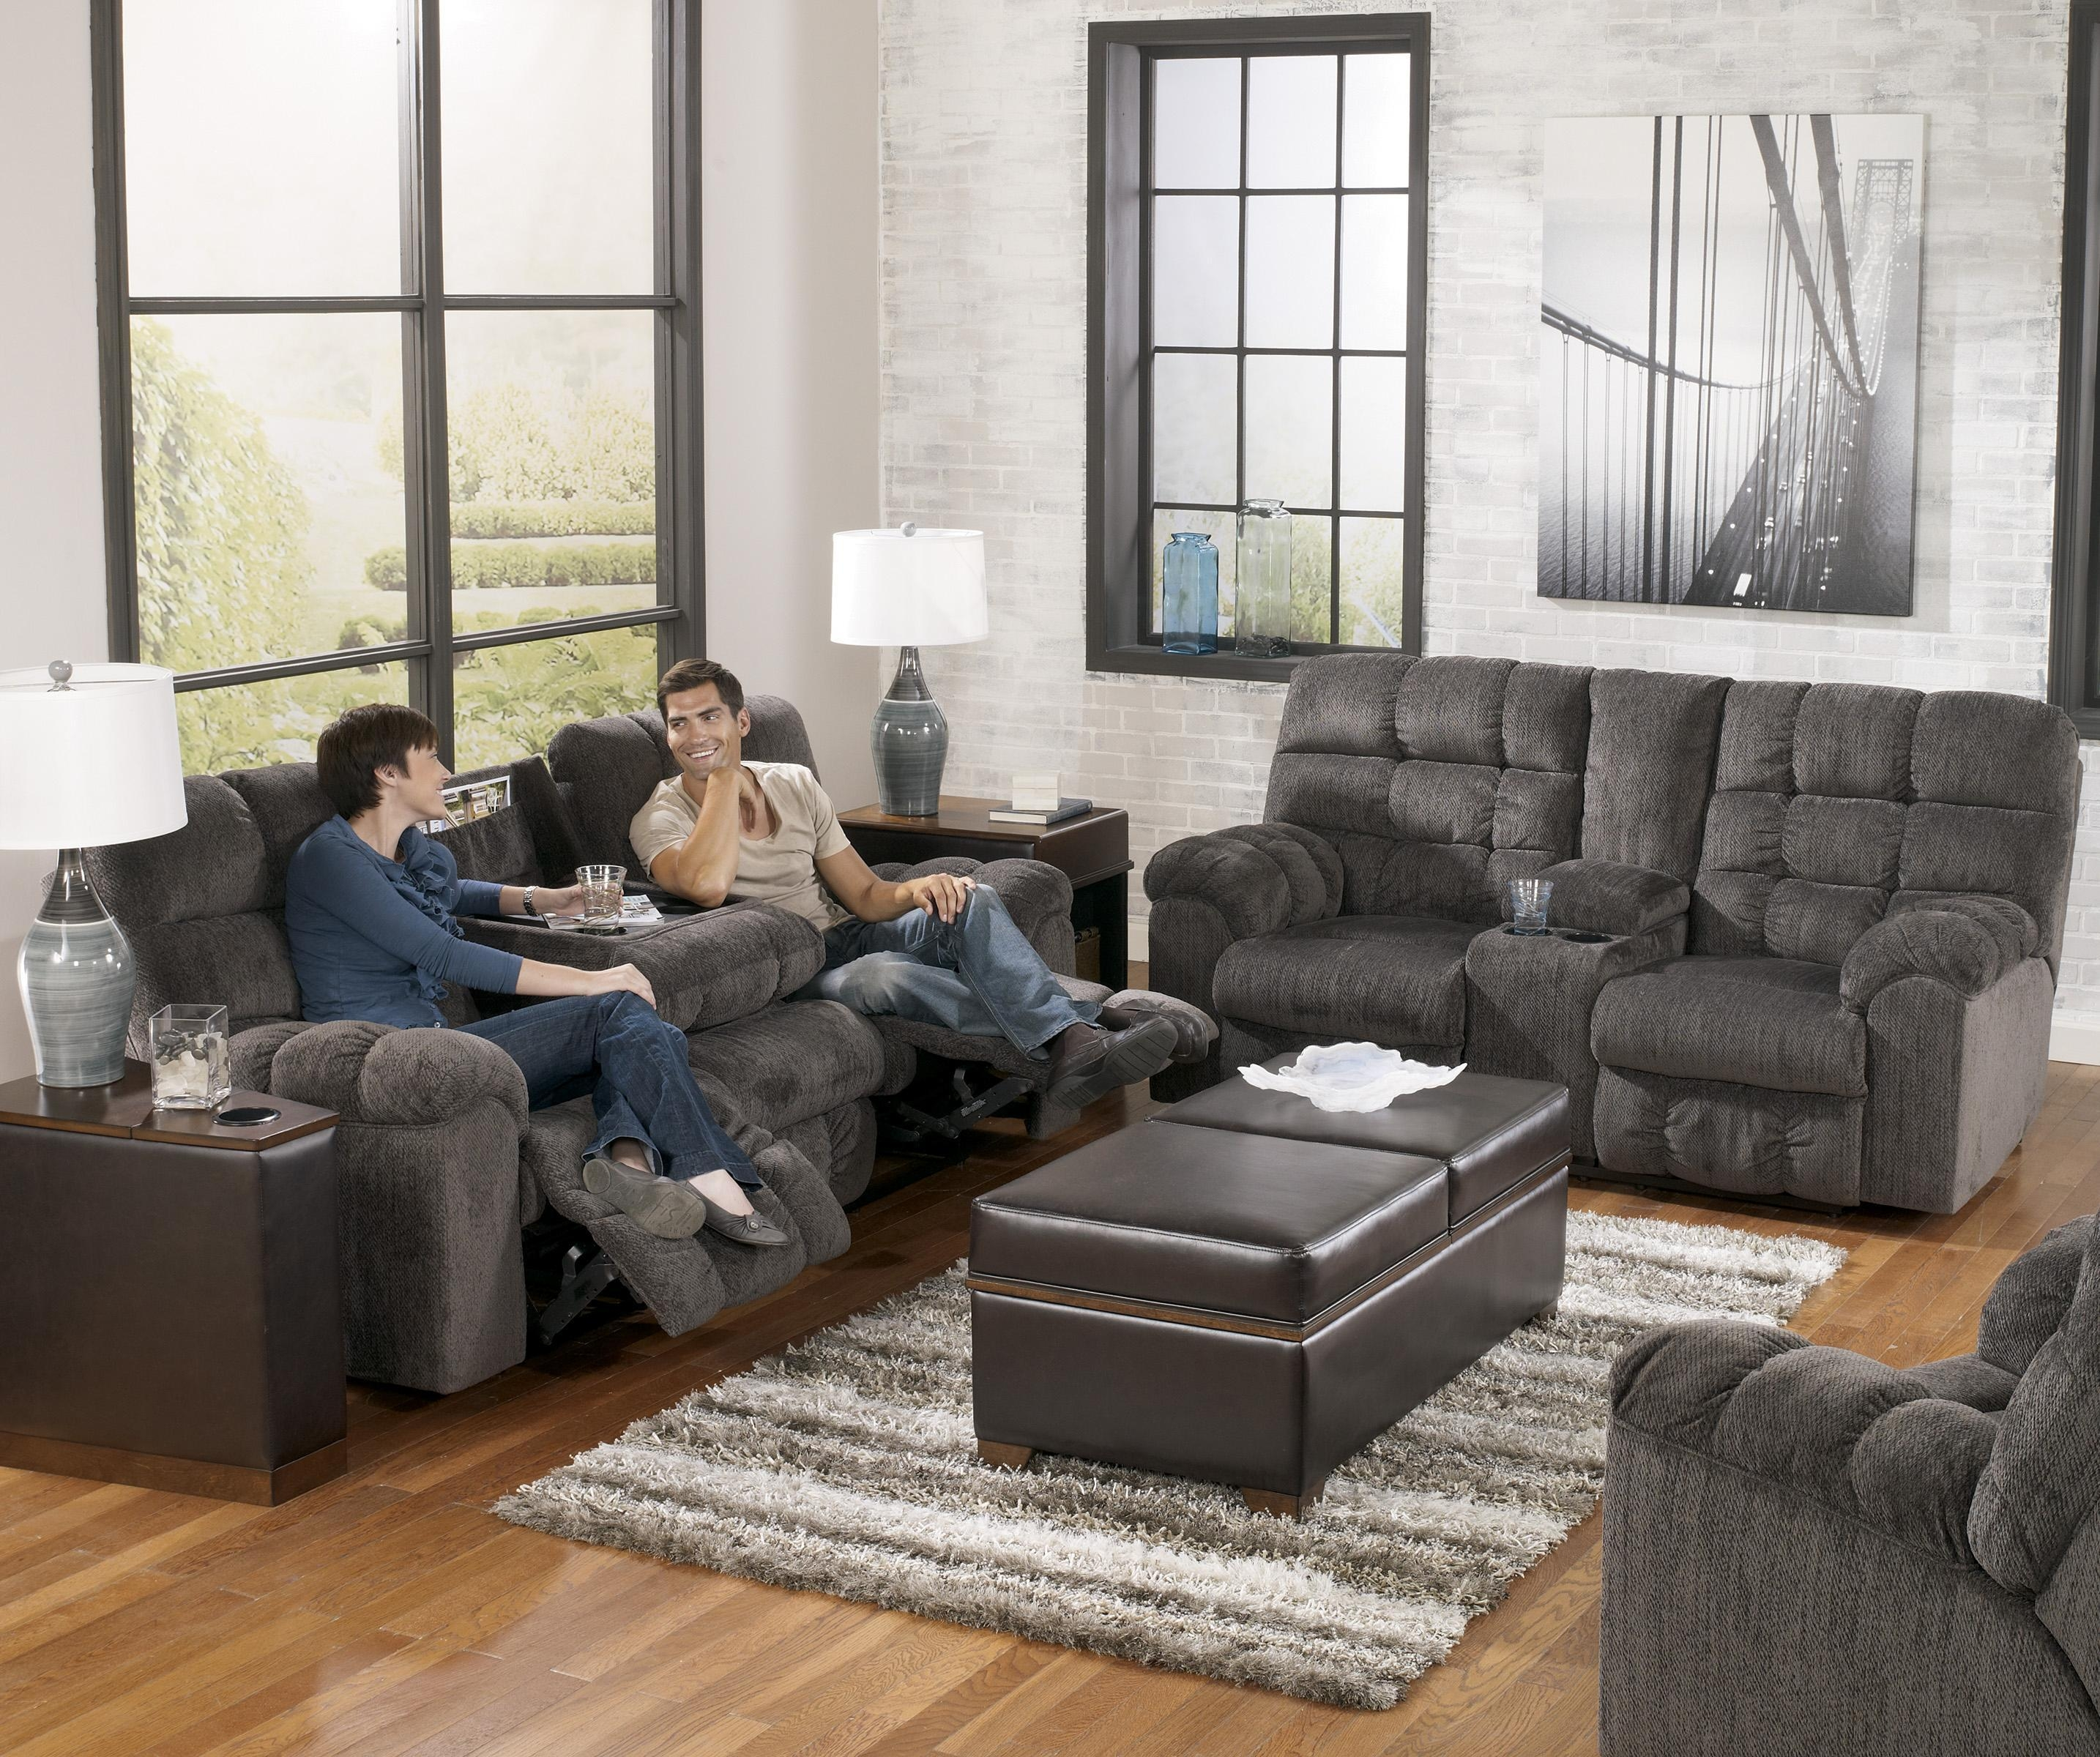 Reclining Sofa With Drop Down Table And Cup Holderssignature For Sectional With Cup Holders (Image 12 of 20)